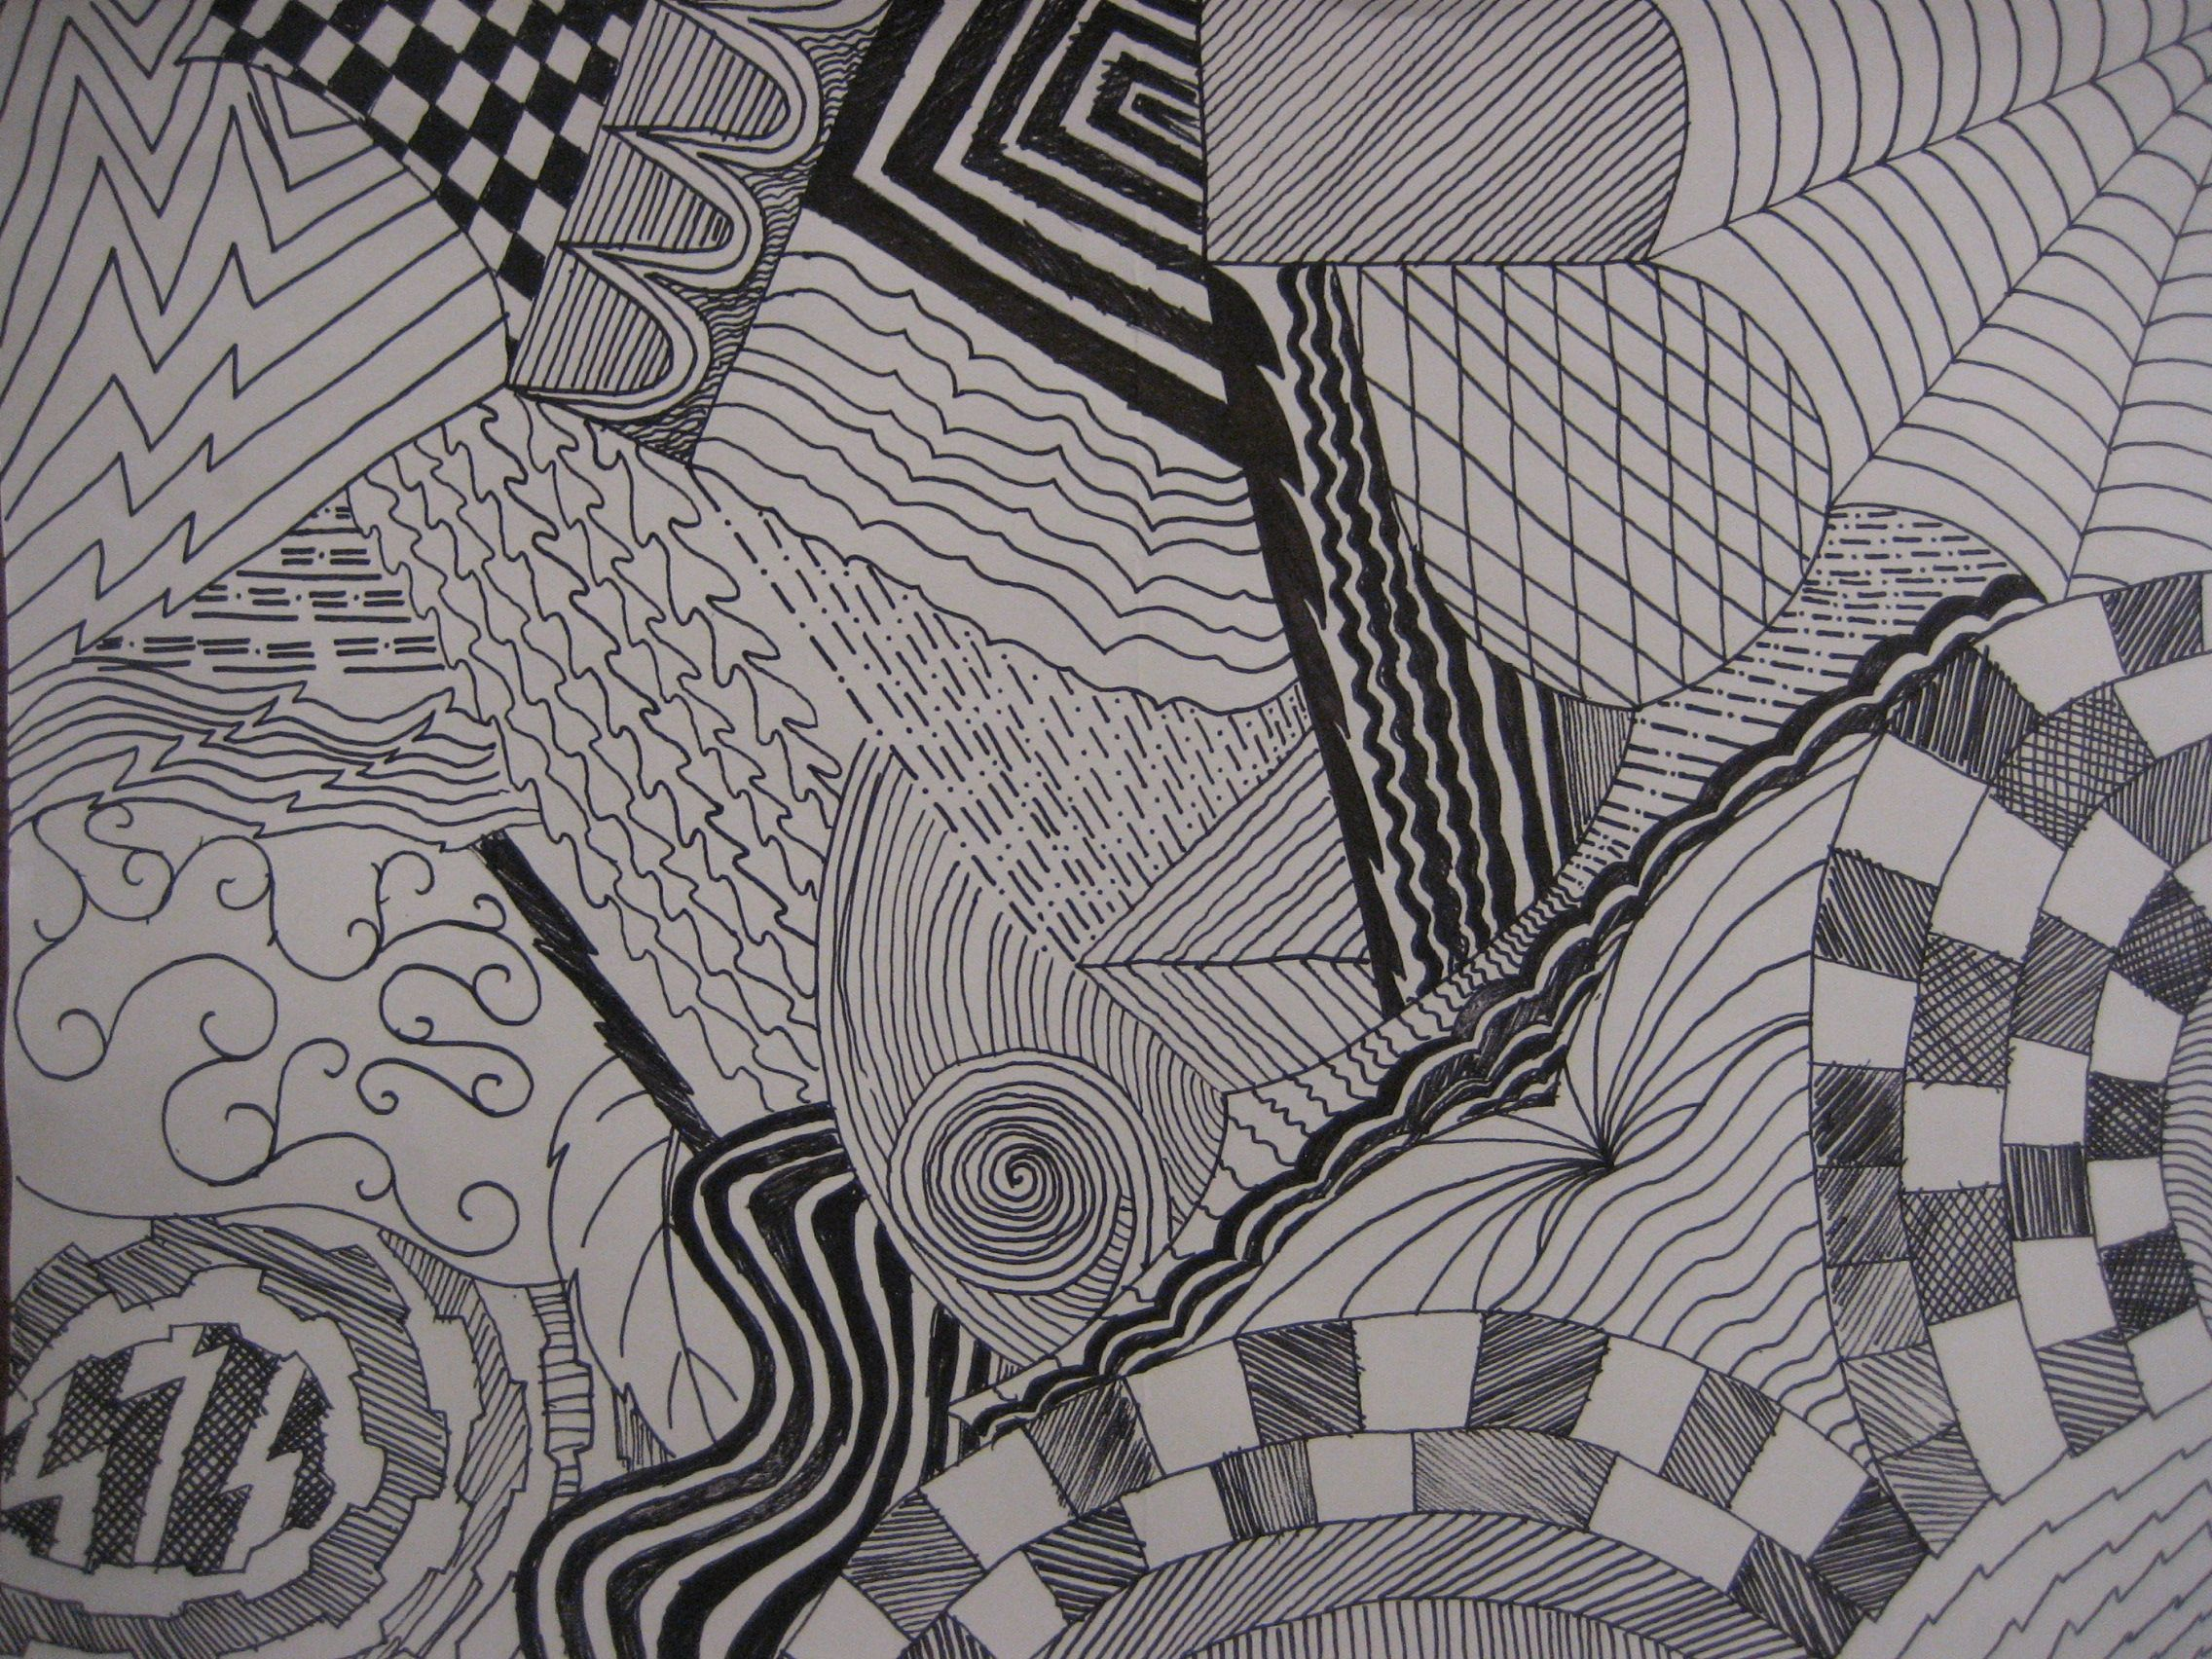 Line Drawing Zentangle : Creative line drawing zentangle my middle school